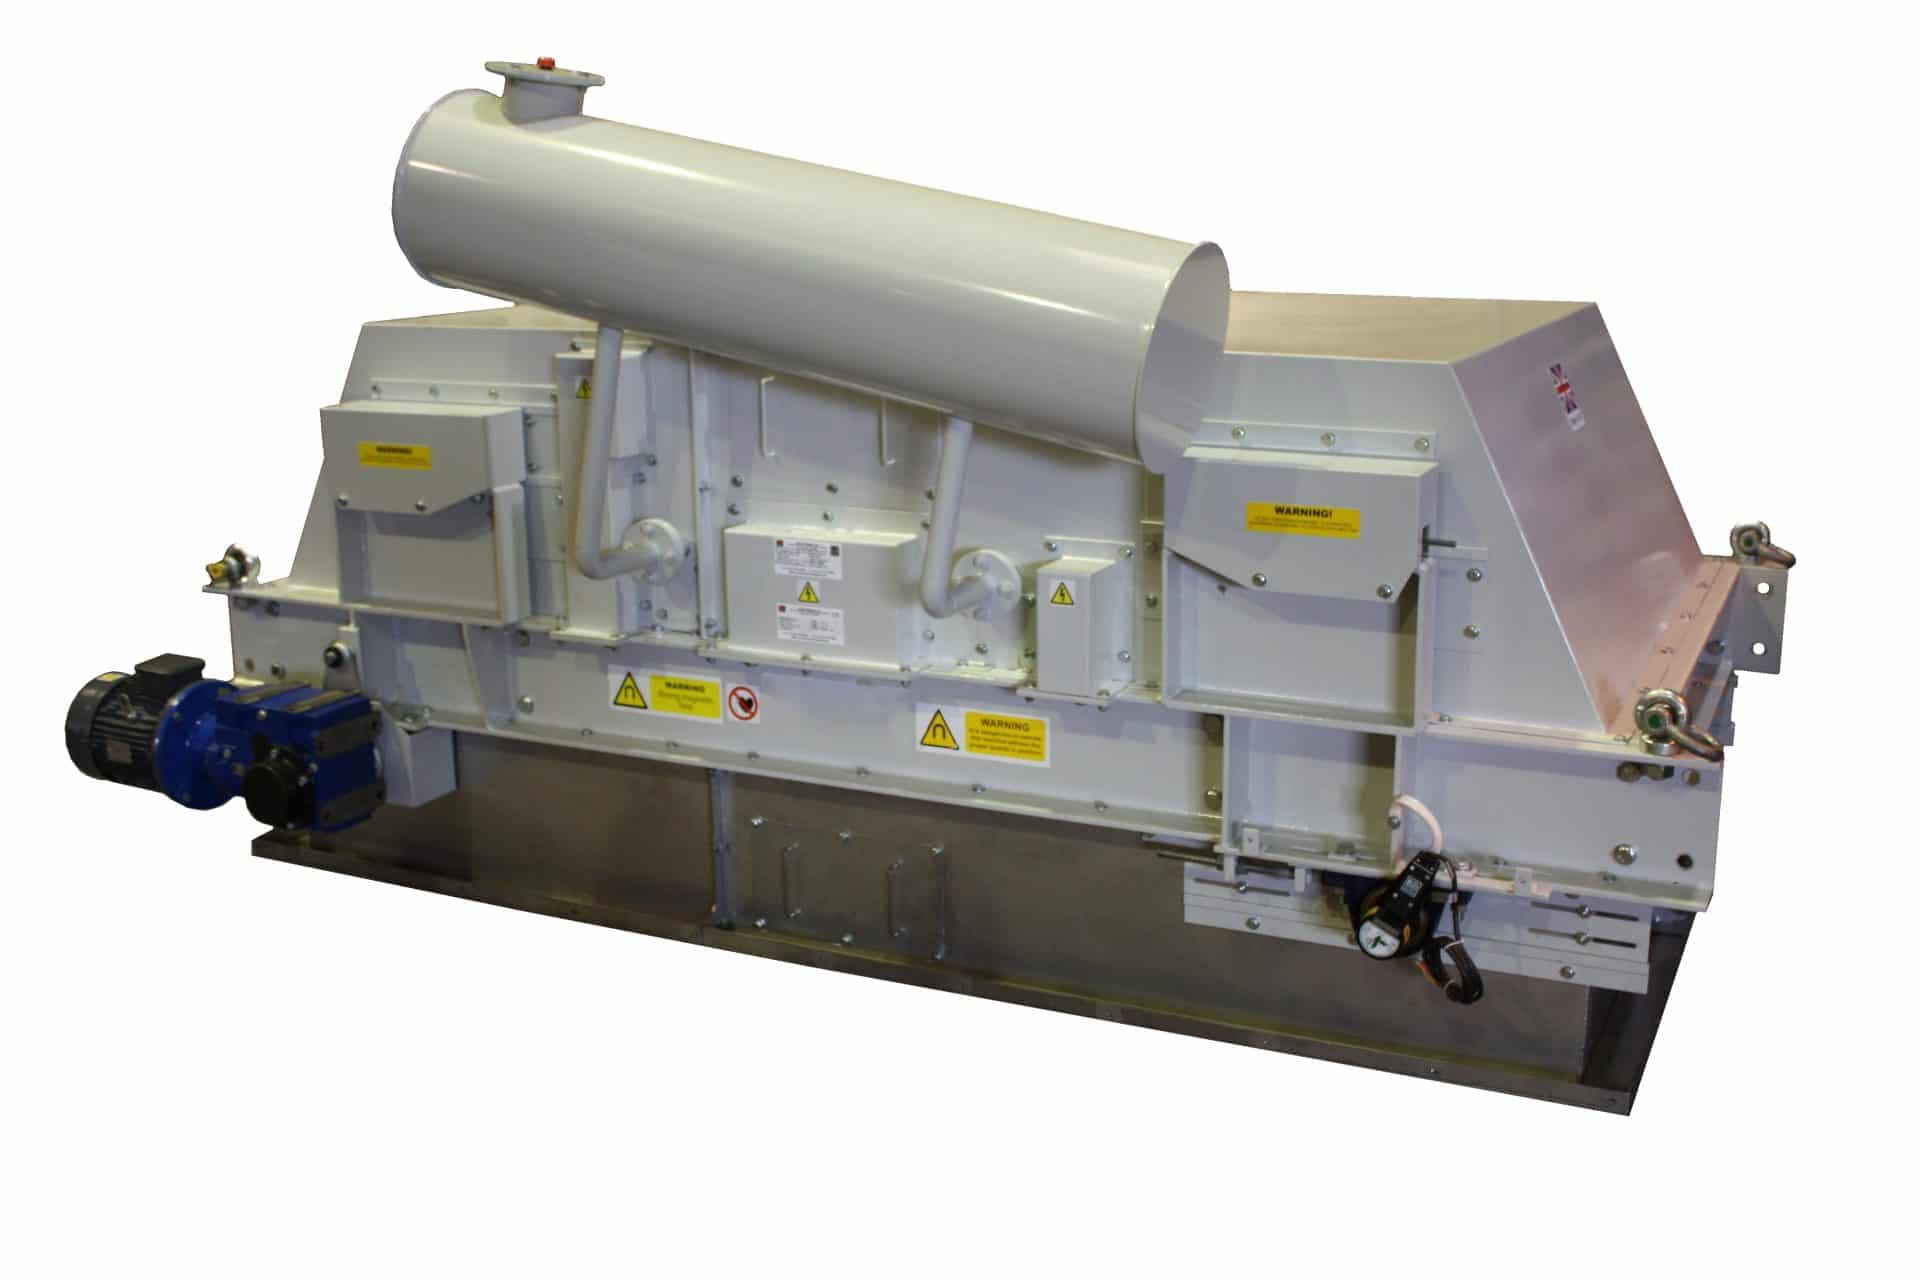 OCW overband magnet